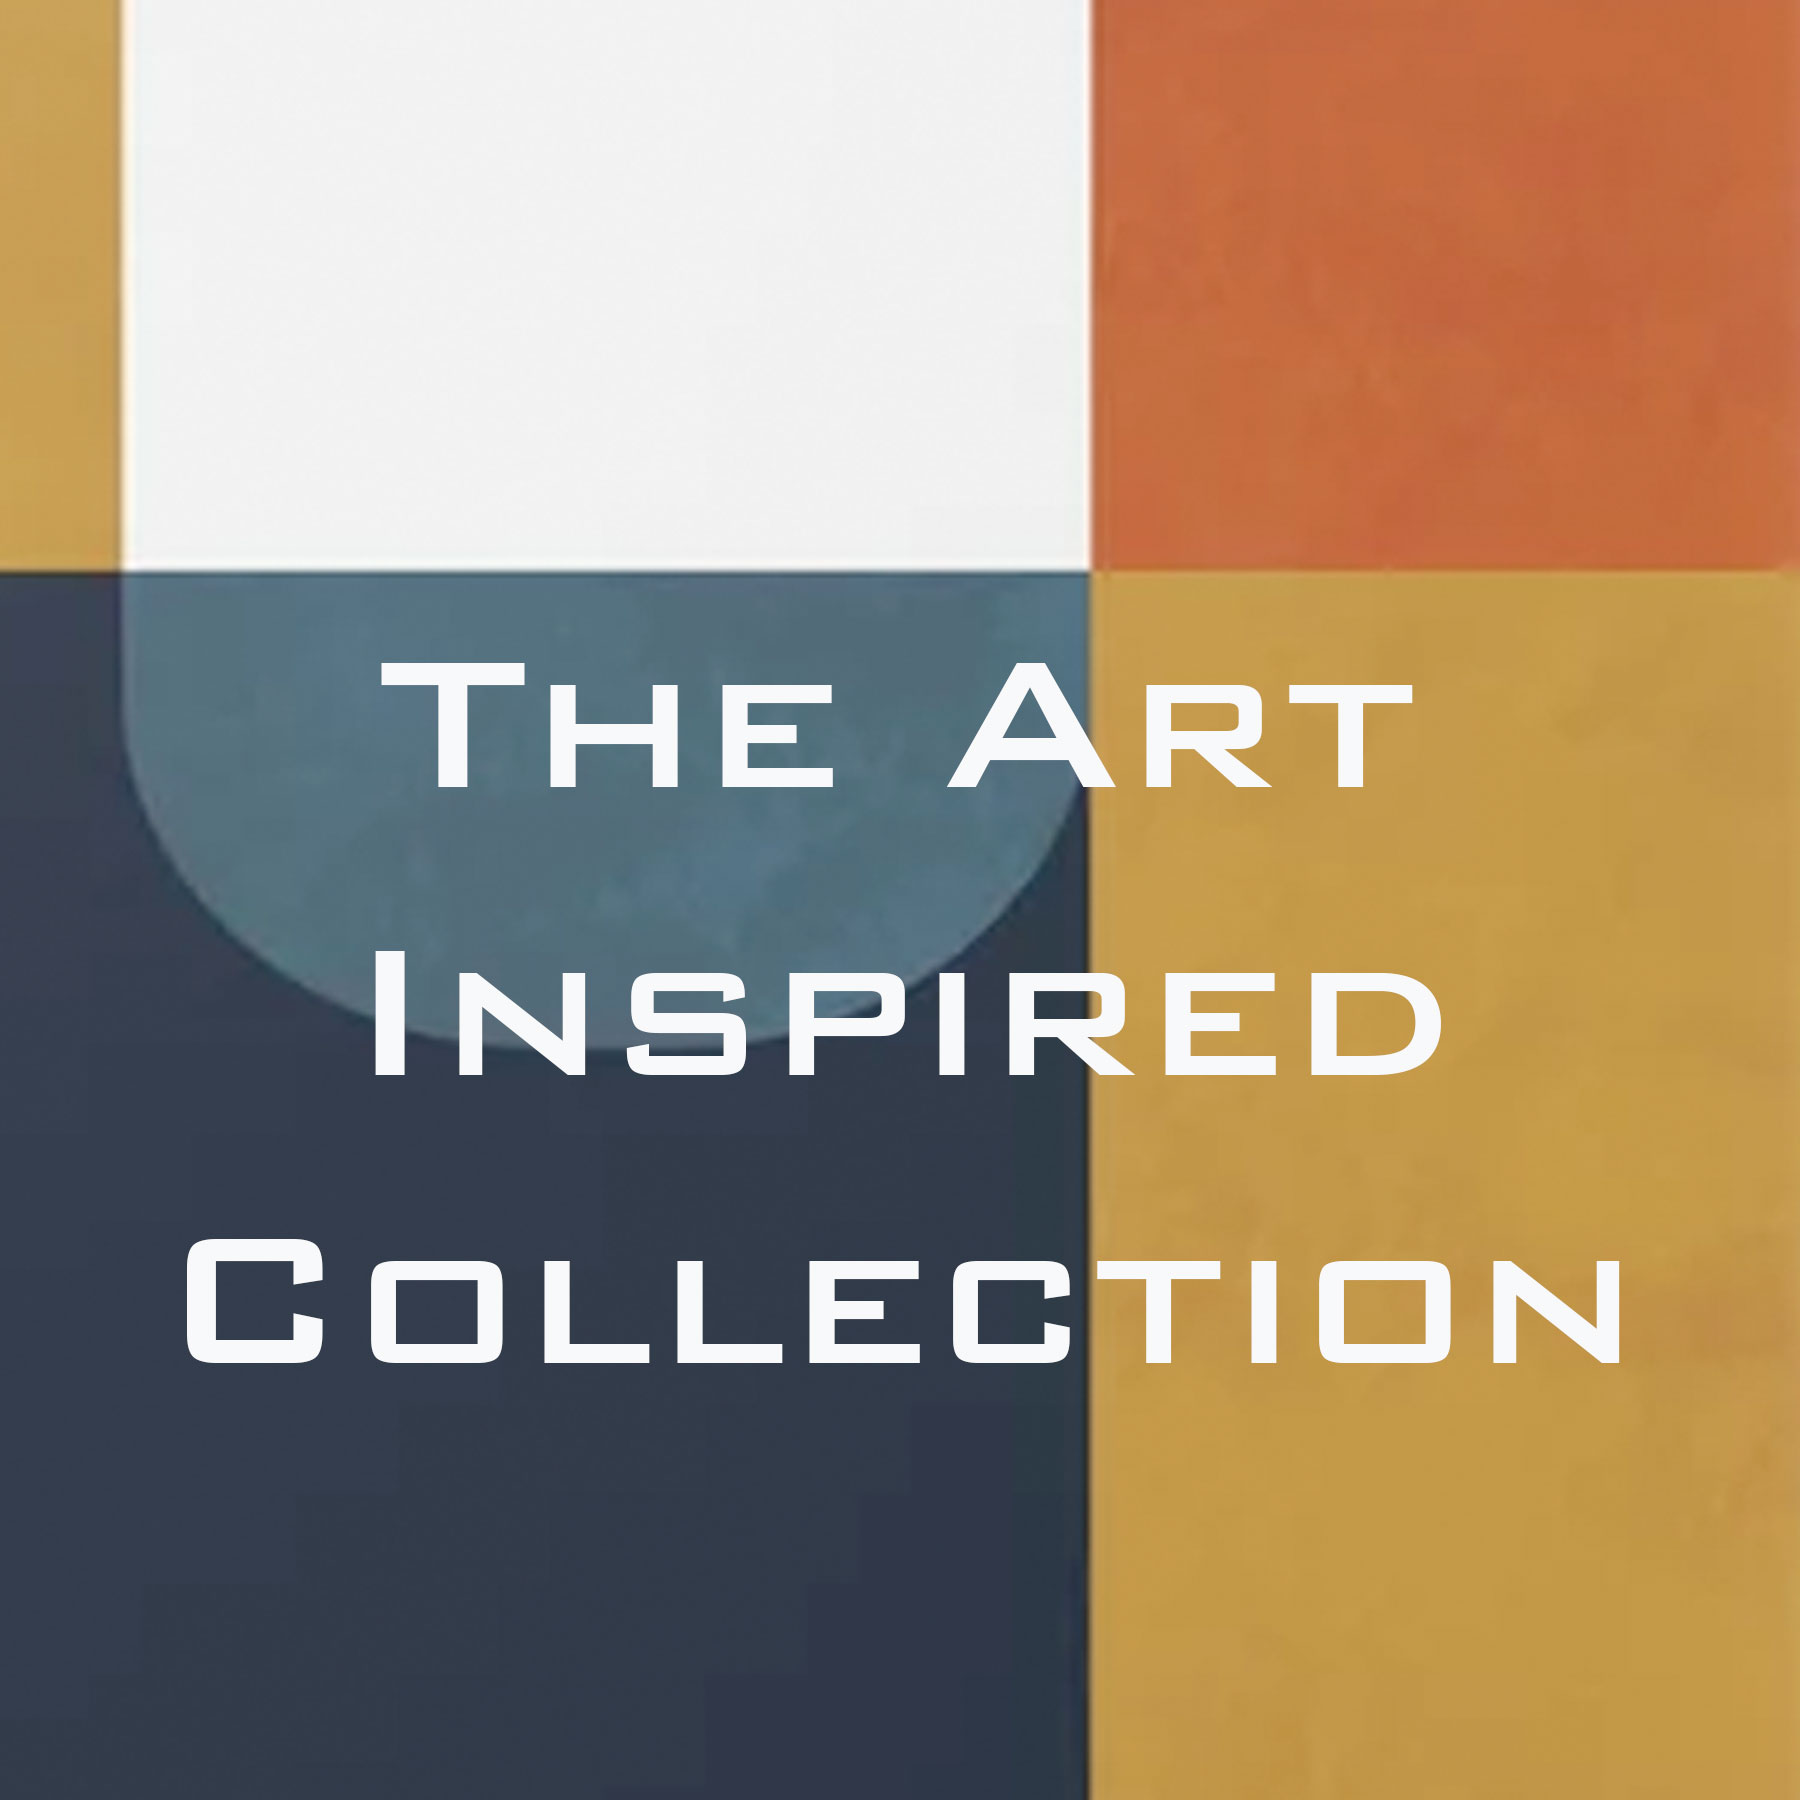 The Art Inspired Collection